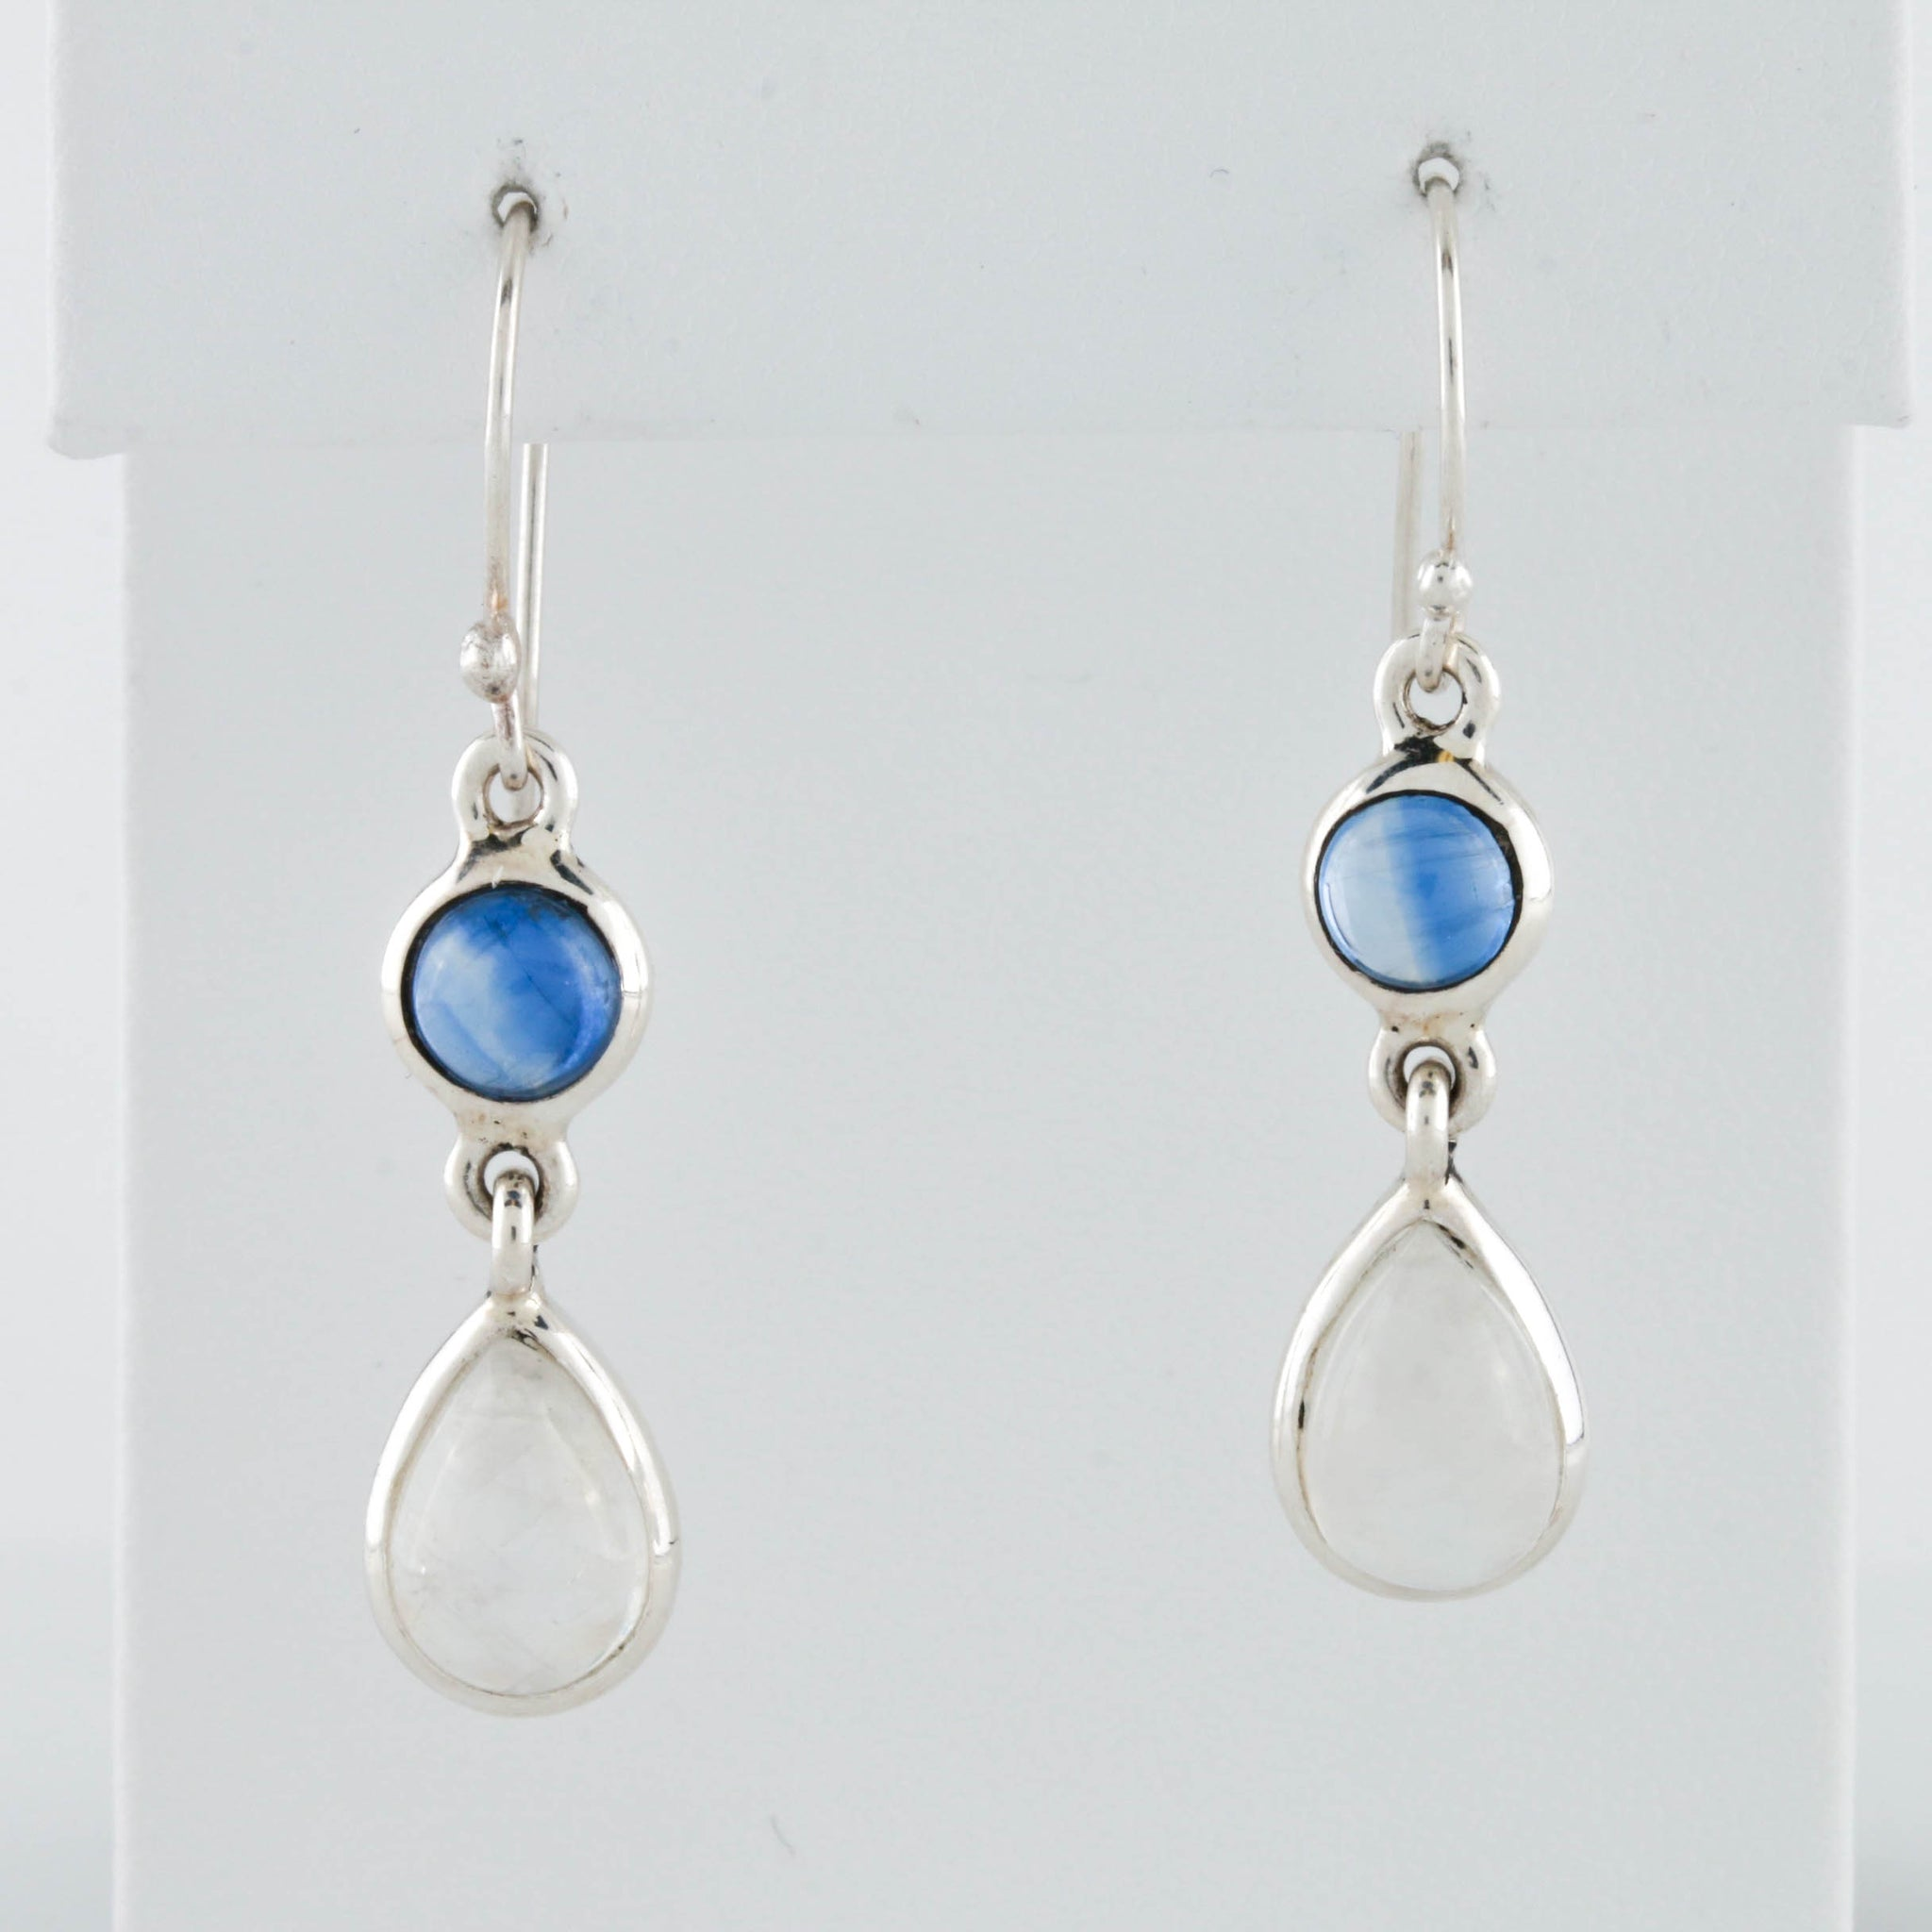 Moonstone and Sapphire in Sterling Silver Earrings - Sindur